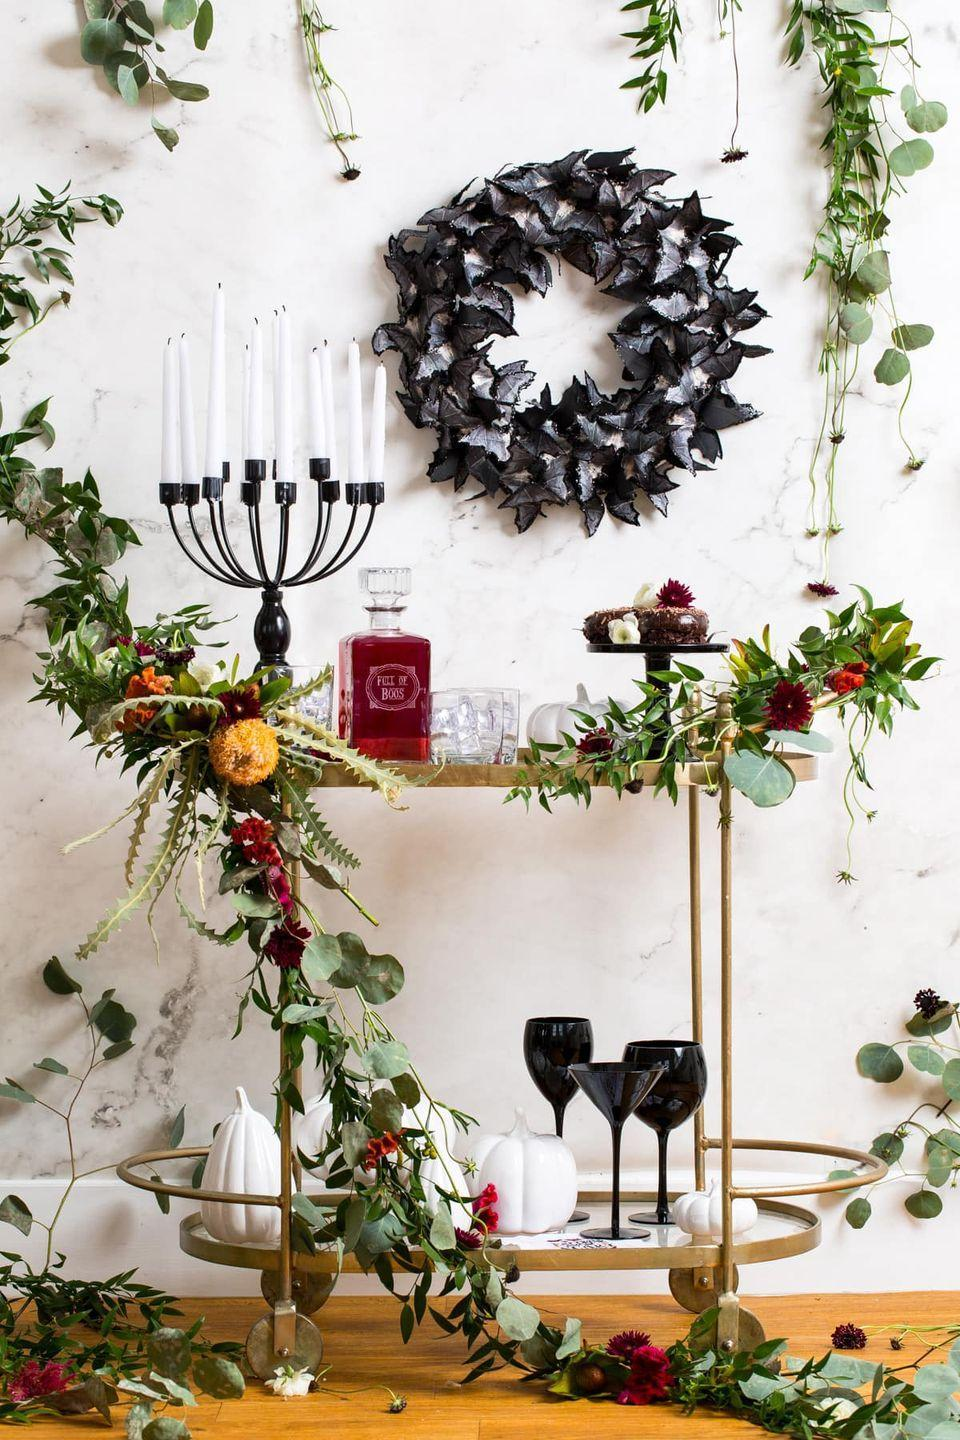 "<p>Don't forget to spruce up the bar cart while you're at it! Learn how to make this gorgeous garland (which also works for the fireplace or as a centerpiece) from <a href=""https://sugarandcloth.com/spooky-diy-floral-bar-cart-for-halloween/"" rel=""nofollow noopener"" target=""_blank"" data-ylk=""slk:Sugar & Cloth"" class=""link rapid-noclick-resp"">Sugar & Cloth</a>.</p><p><a class=""link rapid-noclick-resp"" href=""https://www.amazon.com/Anodized-Aluminum-Training-Multipurpose-Crafting/dp/B078QZSTSB/ref=sr_1_2?tag=syn-yahoo-20&ascsubtag=%5Bartid%7C10057.g.2554%5Bsrc%7Cyahoo-us"" rel=""nofollow noopener"" target=""_blank"" data-ylk=""slk:BUY NOW"">BUY NOW</a> <strong><em>Floral Wire, $12</em></strong></p>"